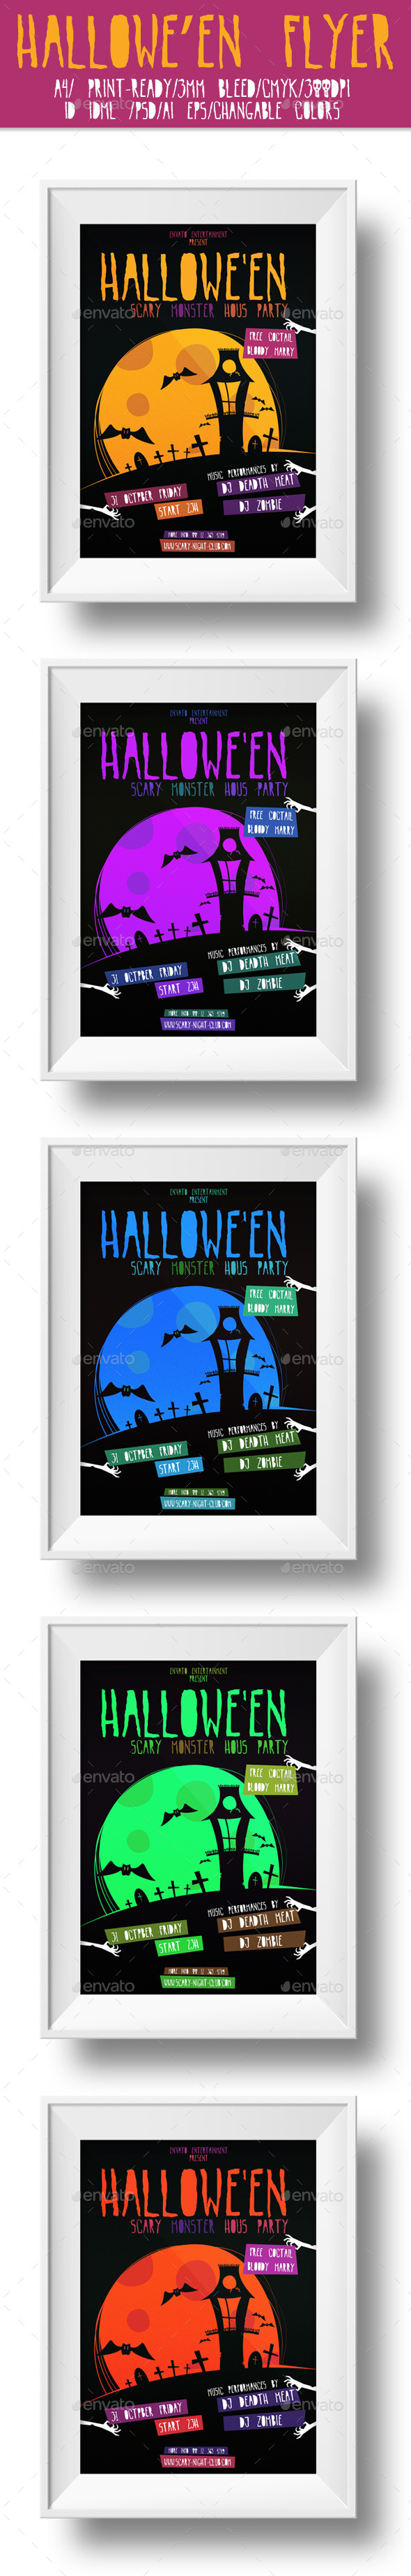 GraphicRiver Halloween Flyer 9123252